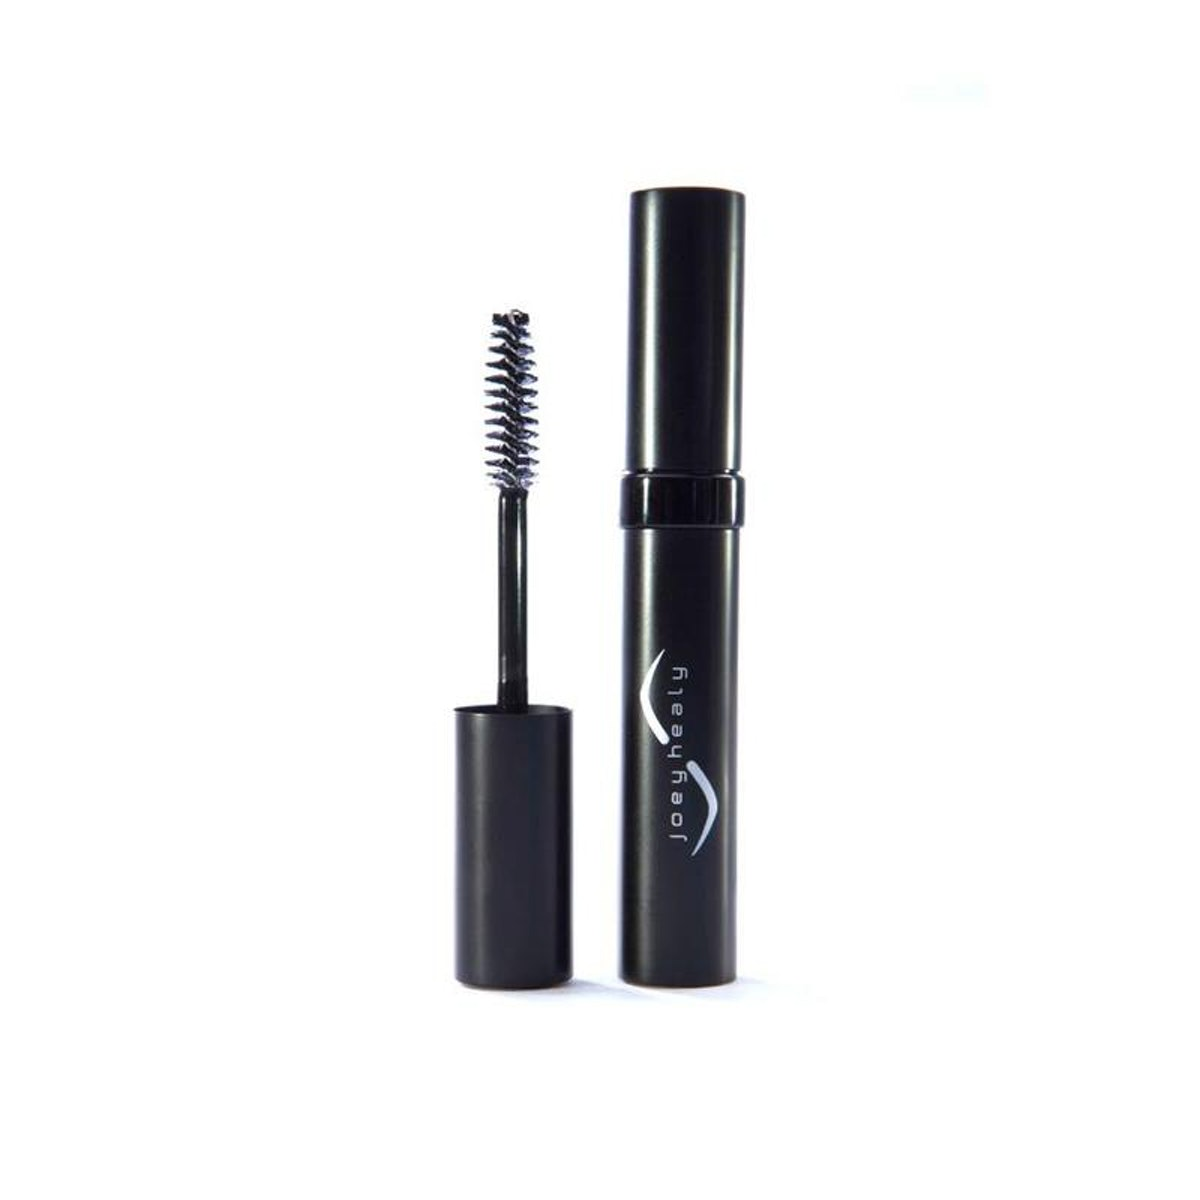 Brow Structure Clear Set